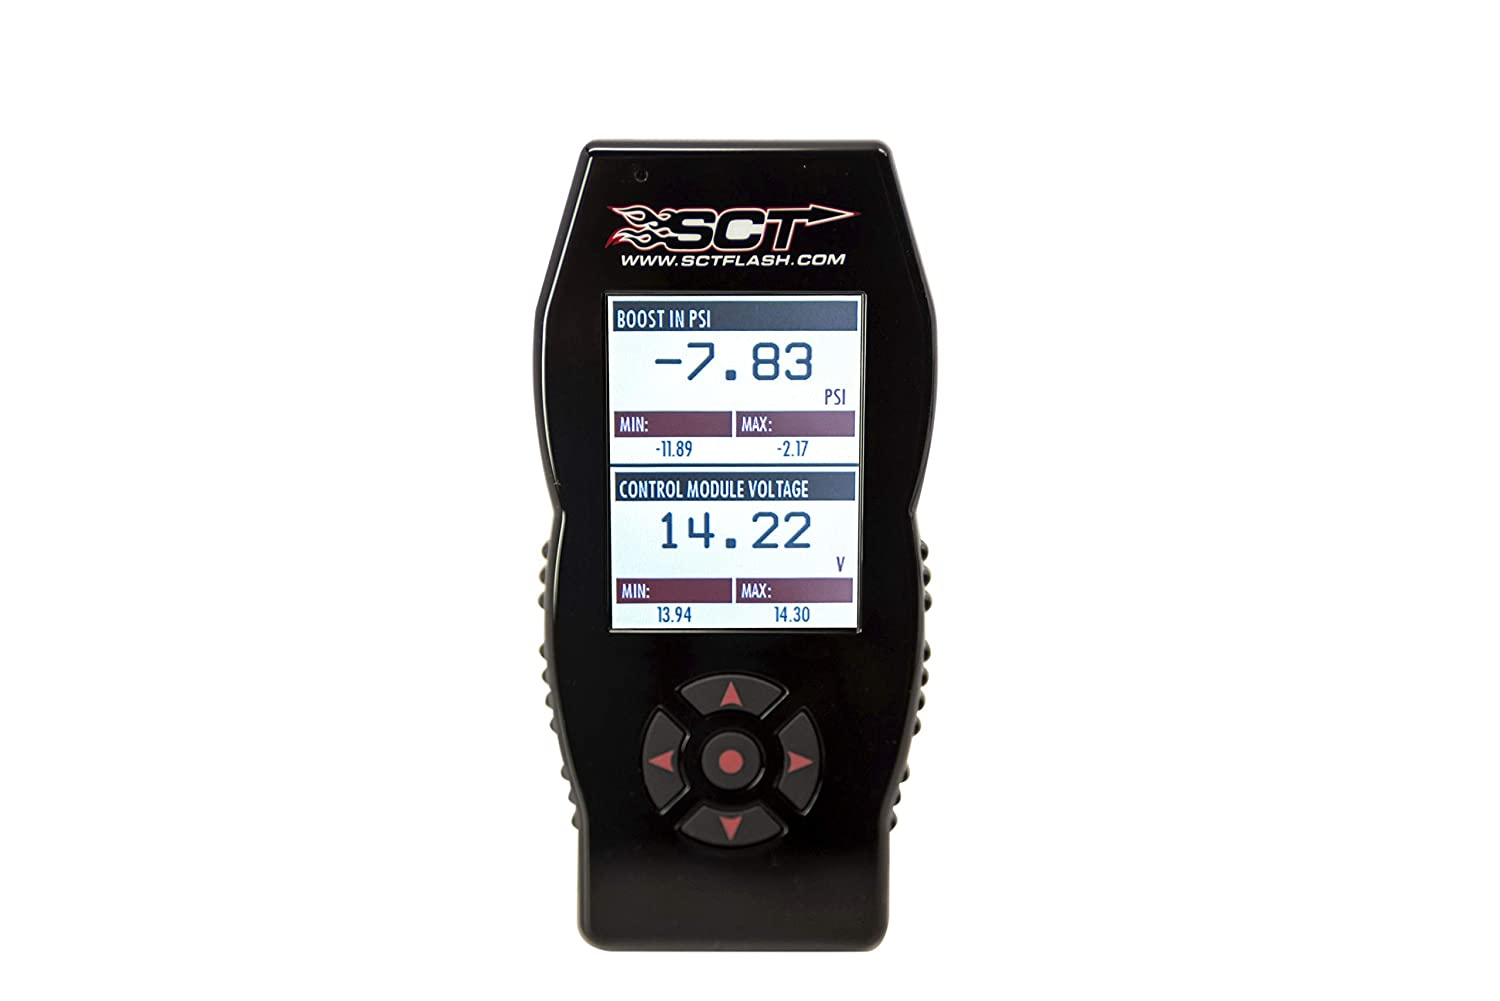 2. SCT 7416 X4 Power Flash Programmer for 6.2 Denali